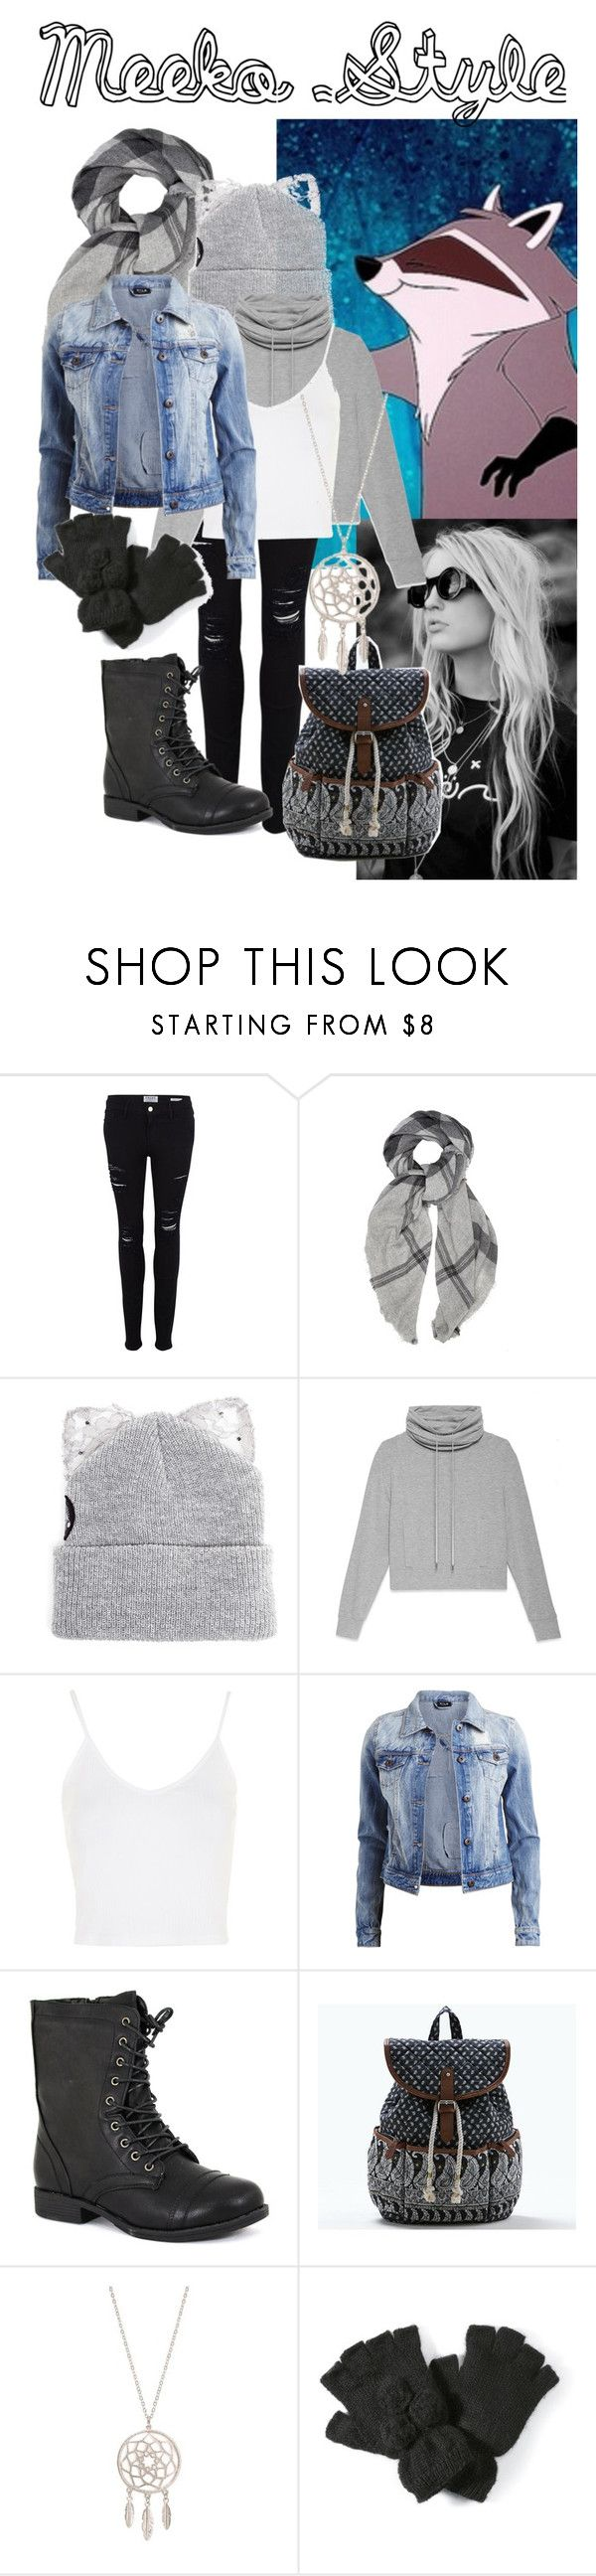 """""""Meeko Style"""" by blackest-raven ❤ liked on Polyvore featuring Frame, Tomas Maier, Silver Spoon Attire, Helmut Lang, Topshop, VILA, Pierre Dumas, American Eagle Outfitters and San Diego Hat Co."""